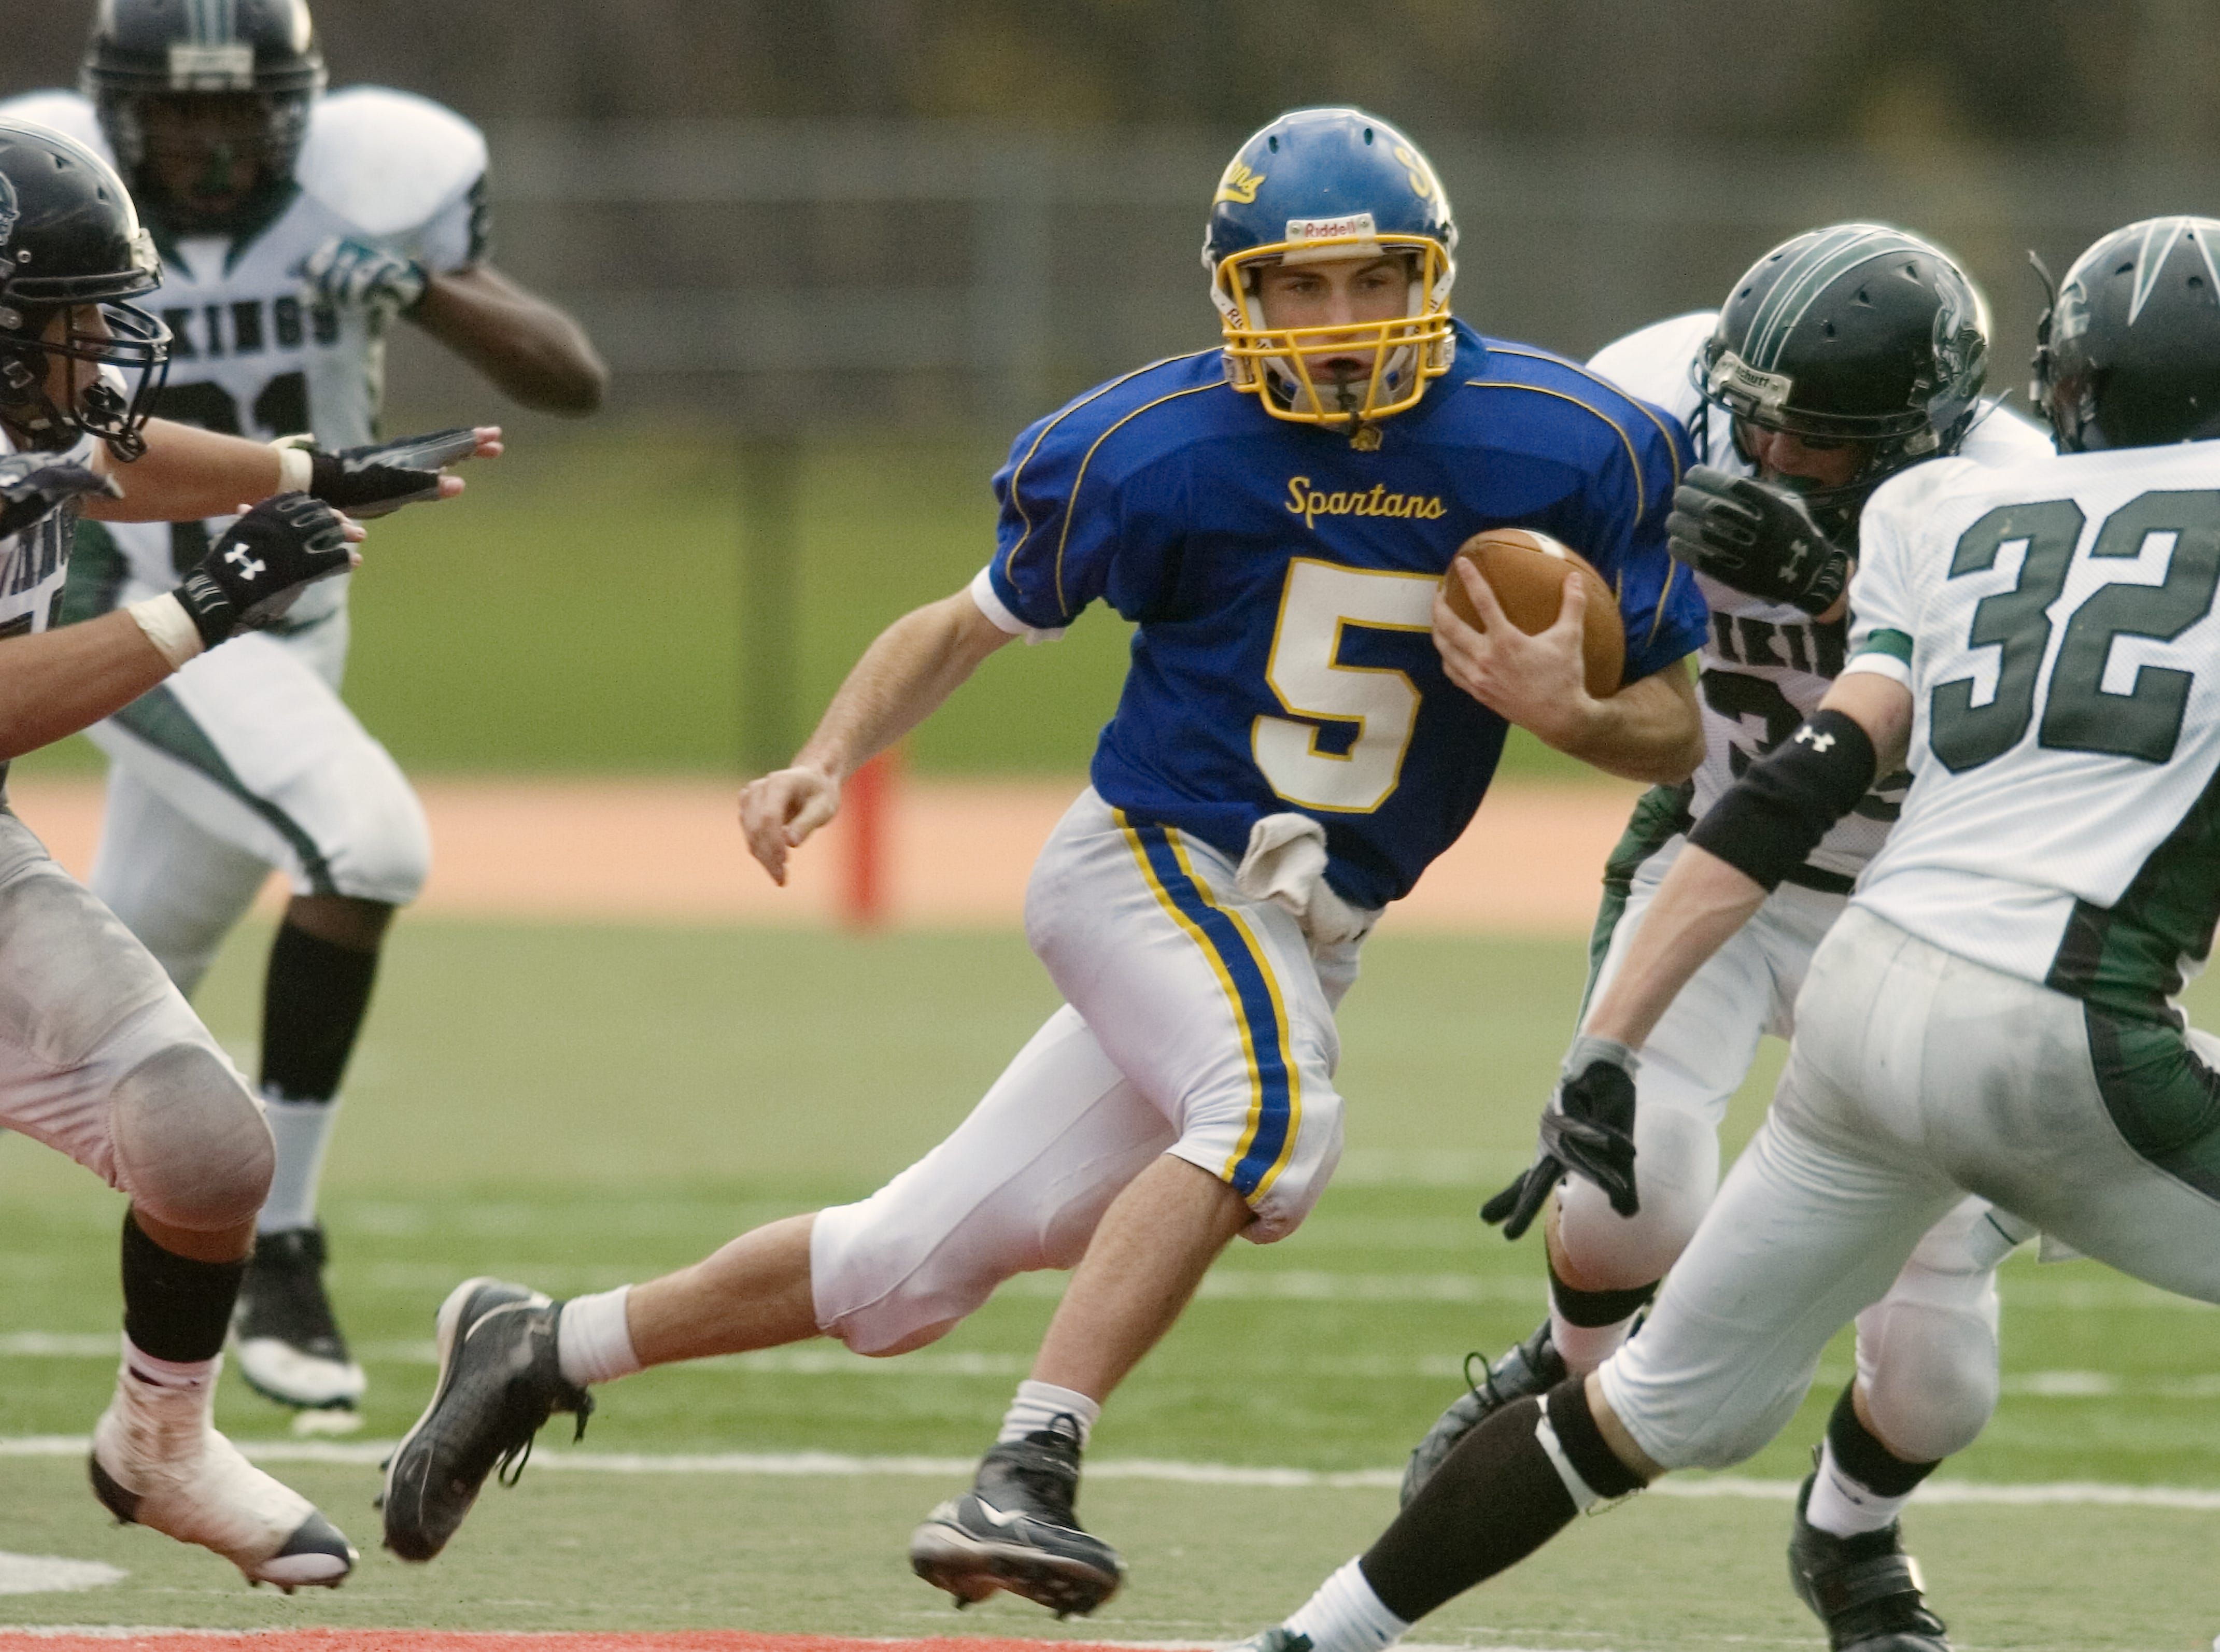 Maine-Endwell's Joey Powell in the third quarter of a 2008 game at Ty Cobb Stadium.